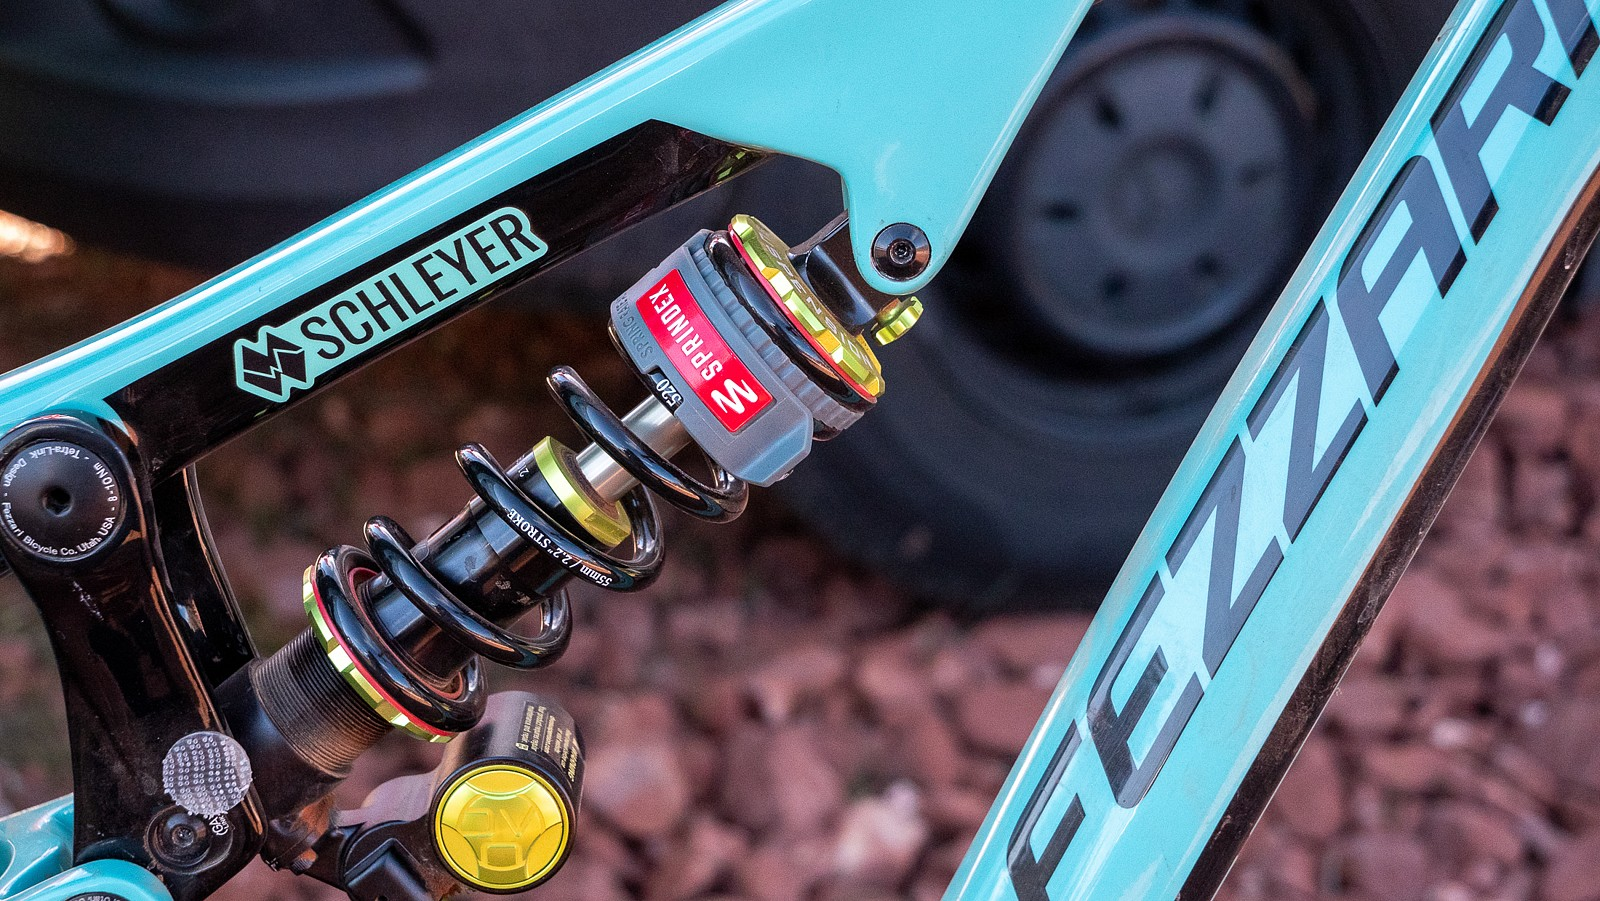 Sprindex on Schley's Fezzari - PIT BITS - Sedona Mountain Bike Festival 2020 - Mountain Biking Pictures - Vital MTB